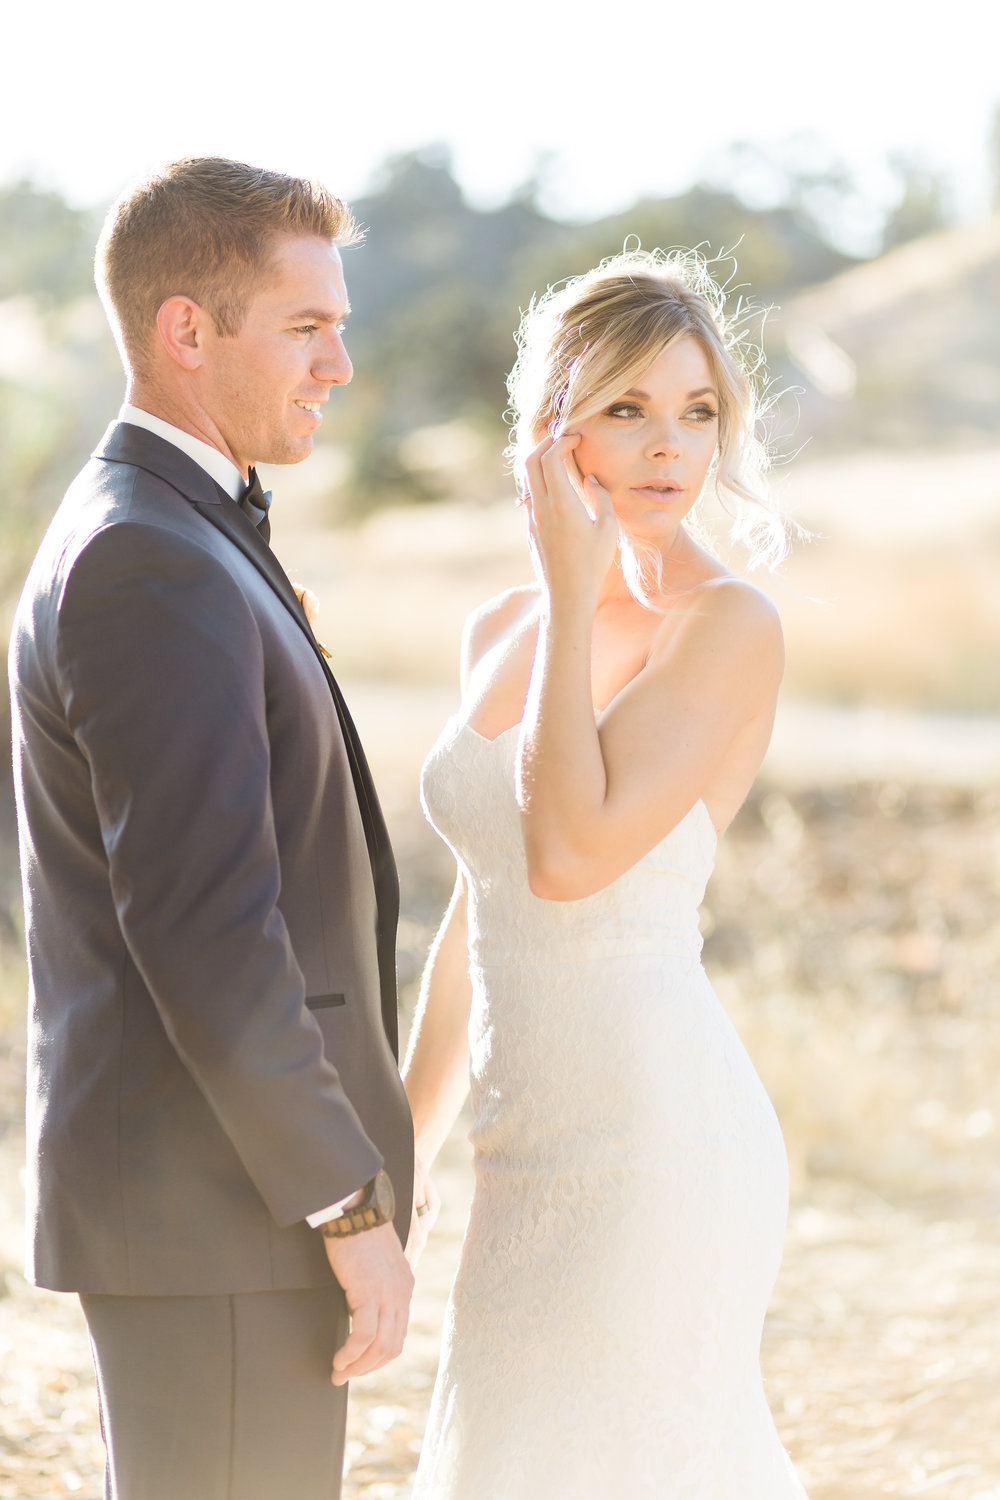 Santa Clarita bride and groom